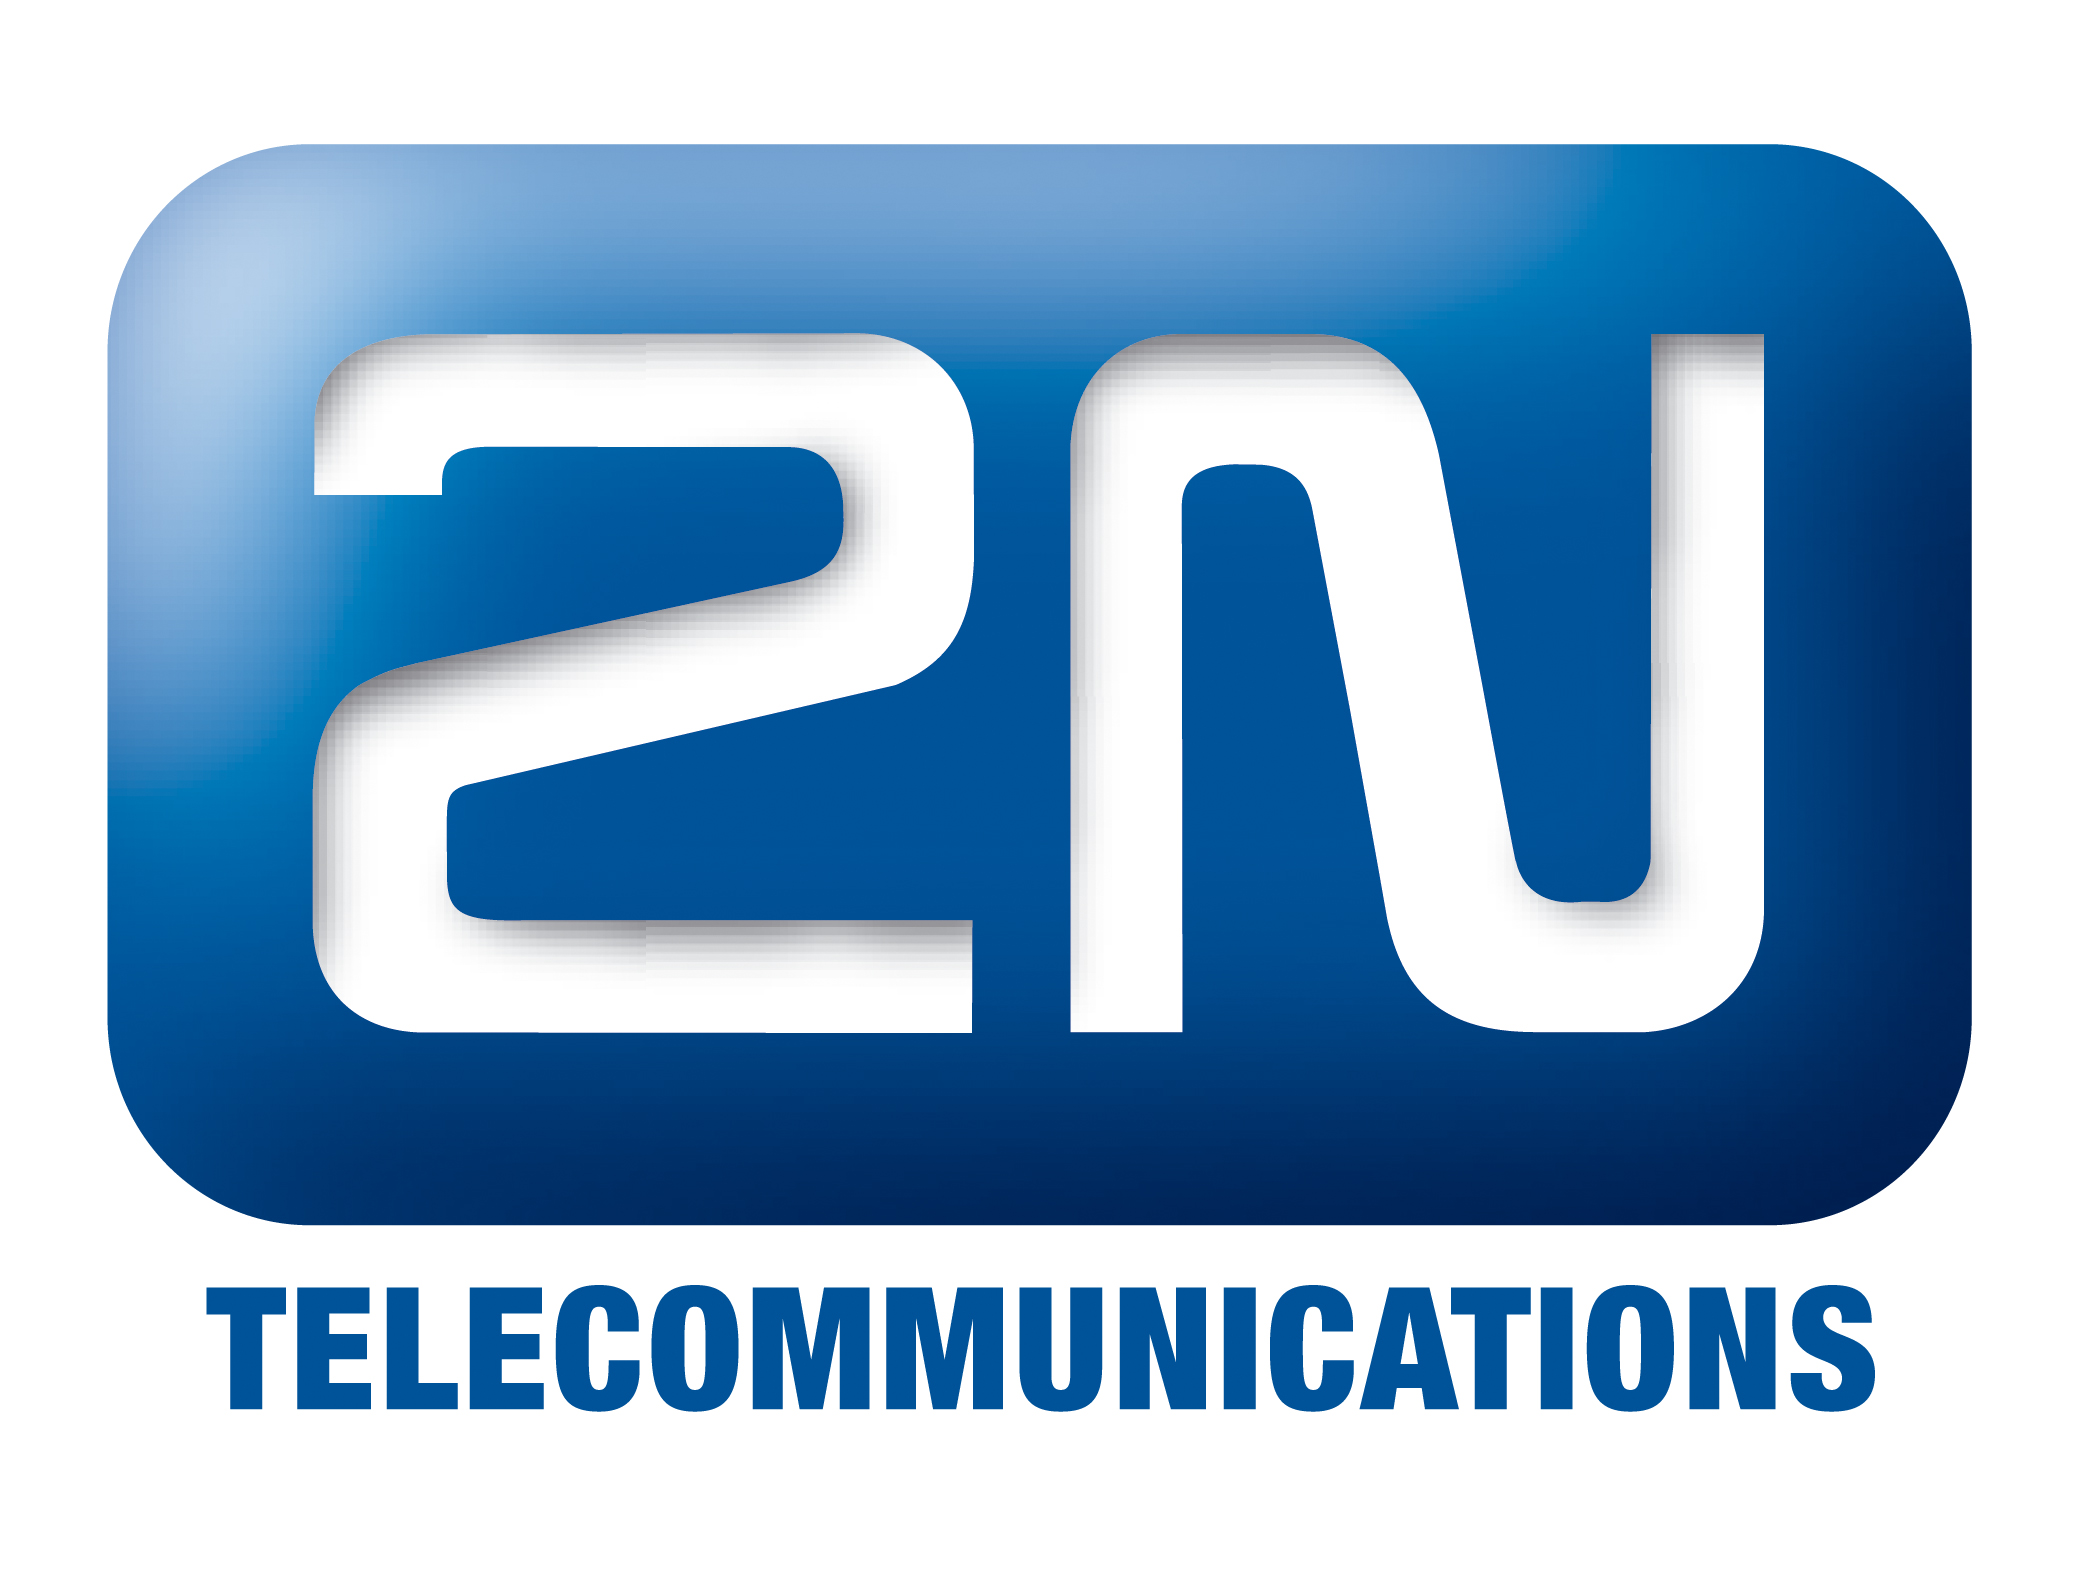 2N Telecommunications je reference JOYCE